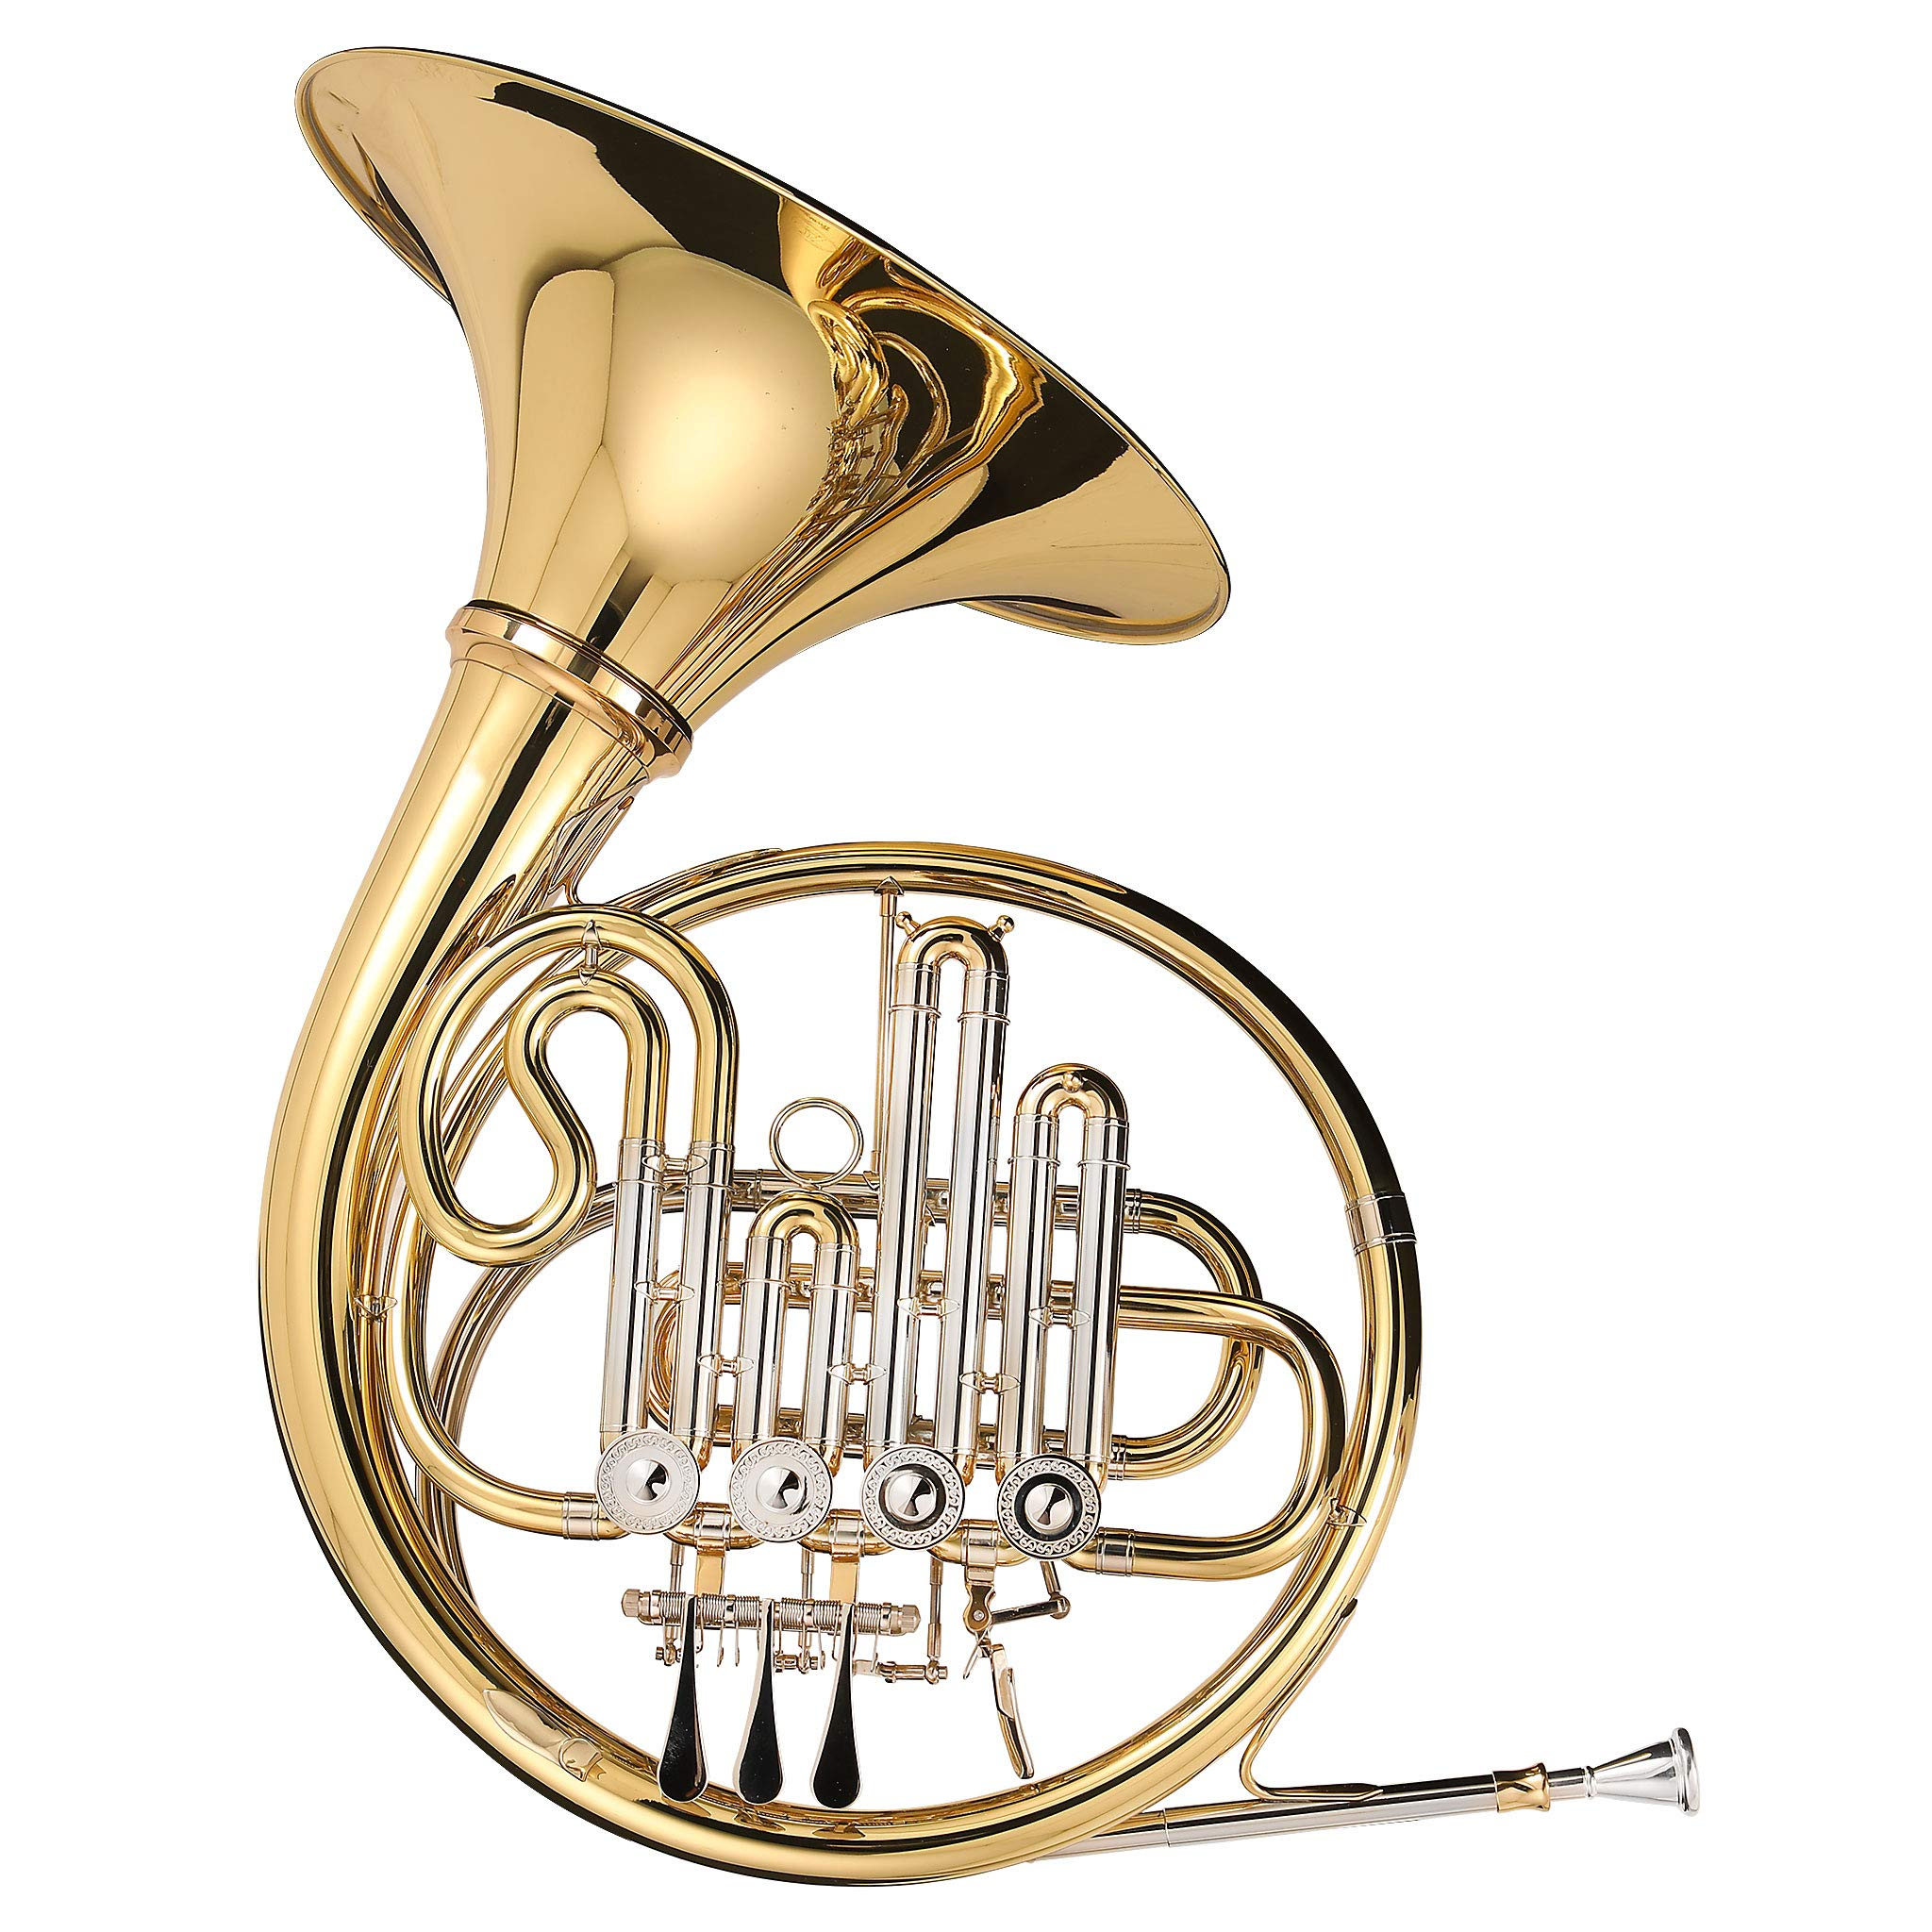 Kaizer French Horn Bb A 3000 C-Series Gold Lacquer with Case & Accessories FRH-3500LQRC-BA by Kaizer